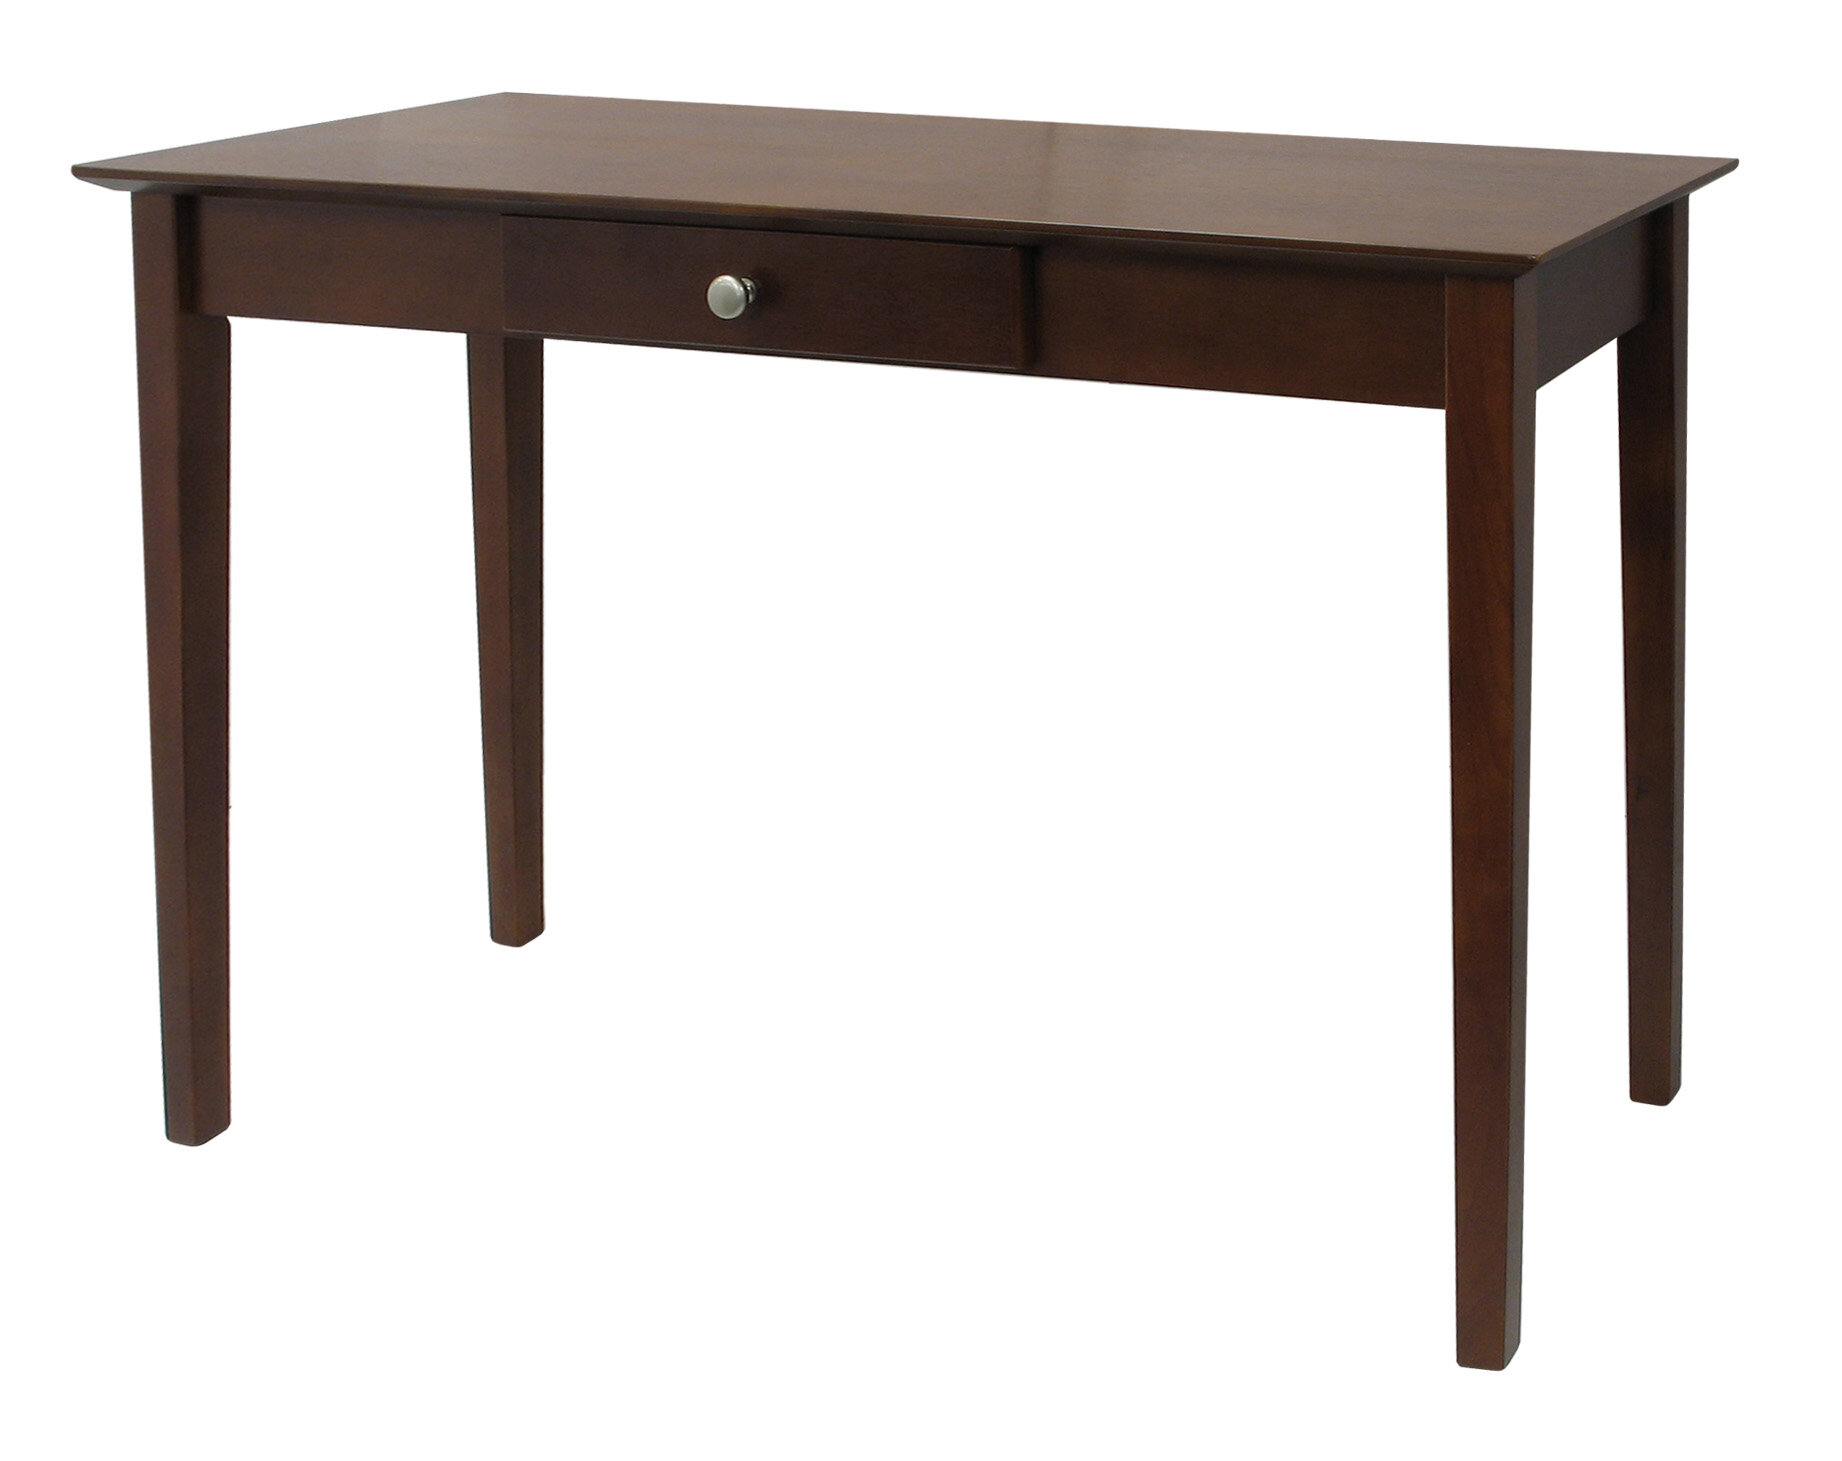 Exceptionnel Charlton Home Charlotte Console Table With One Drawer U0026 Reviews | Wayfair